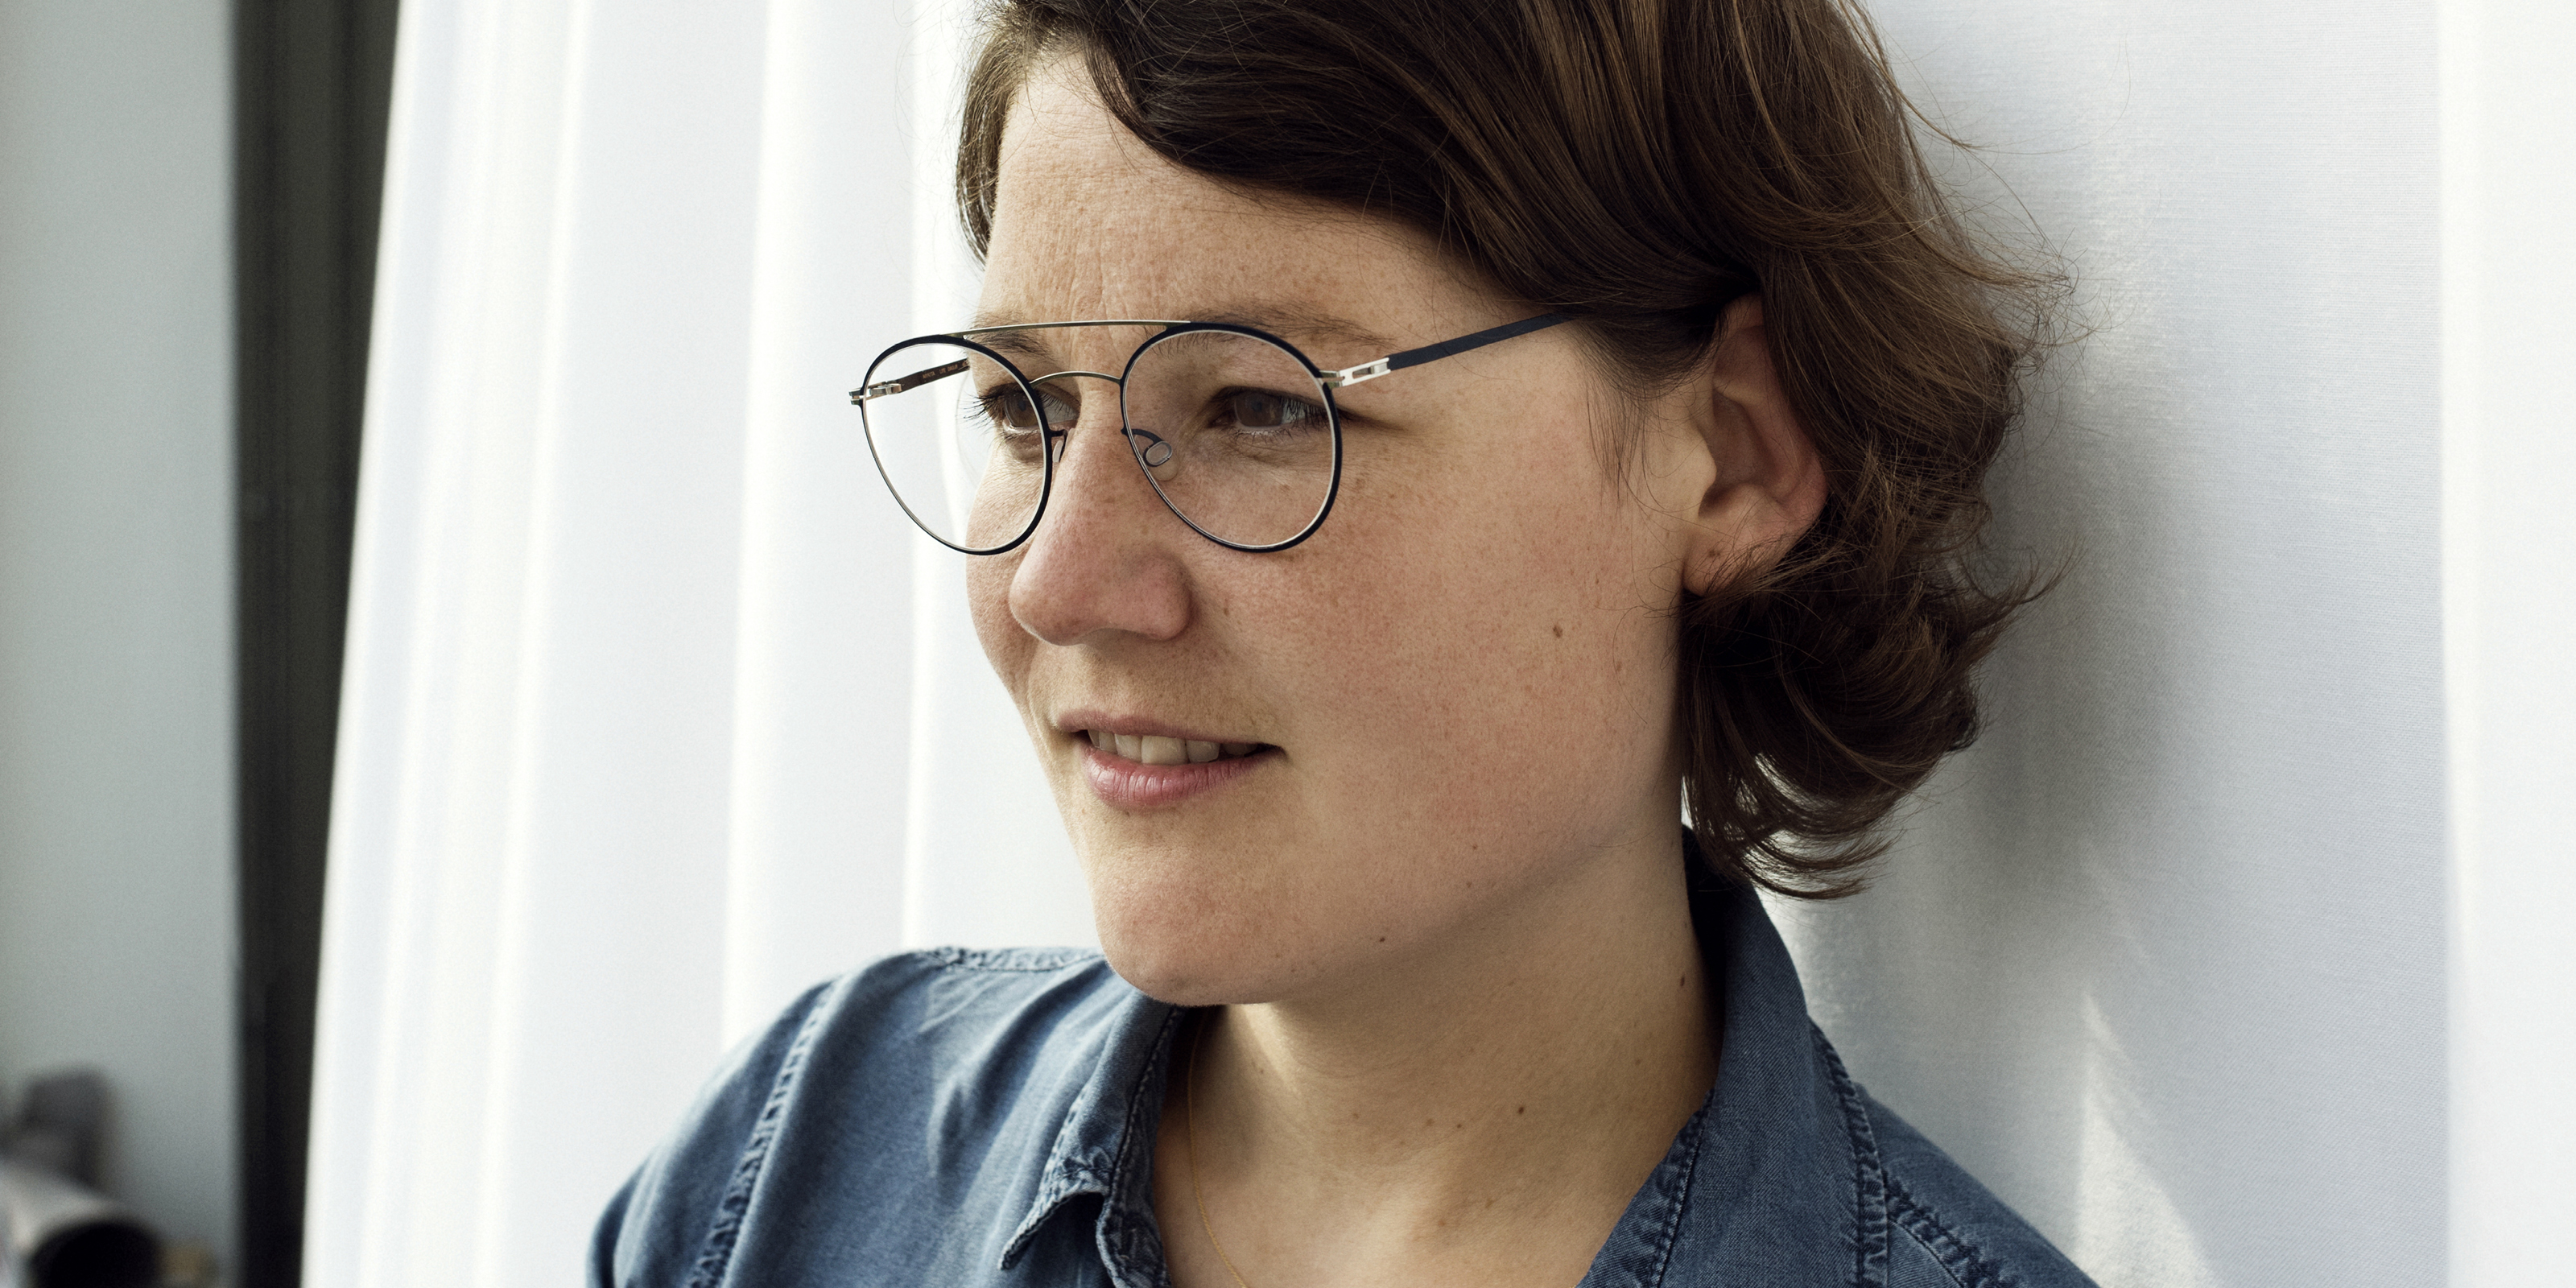 MYKITA's junior product designer Ina Marie tell us about her work and the life in the MYKITA HAUS